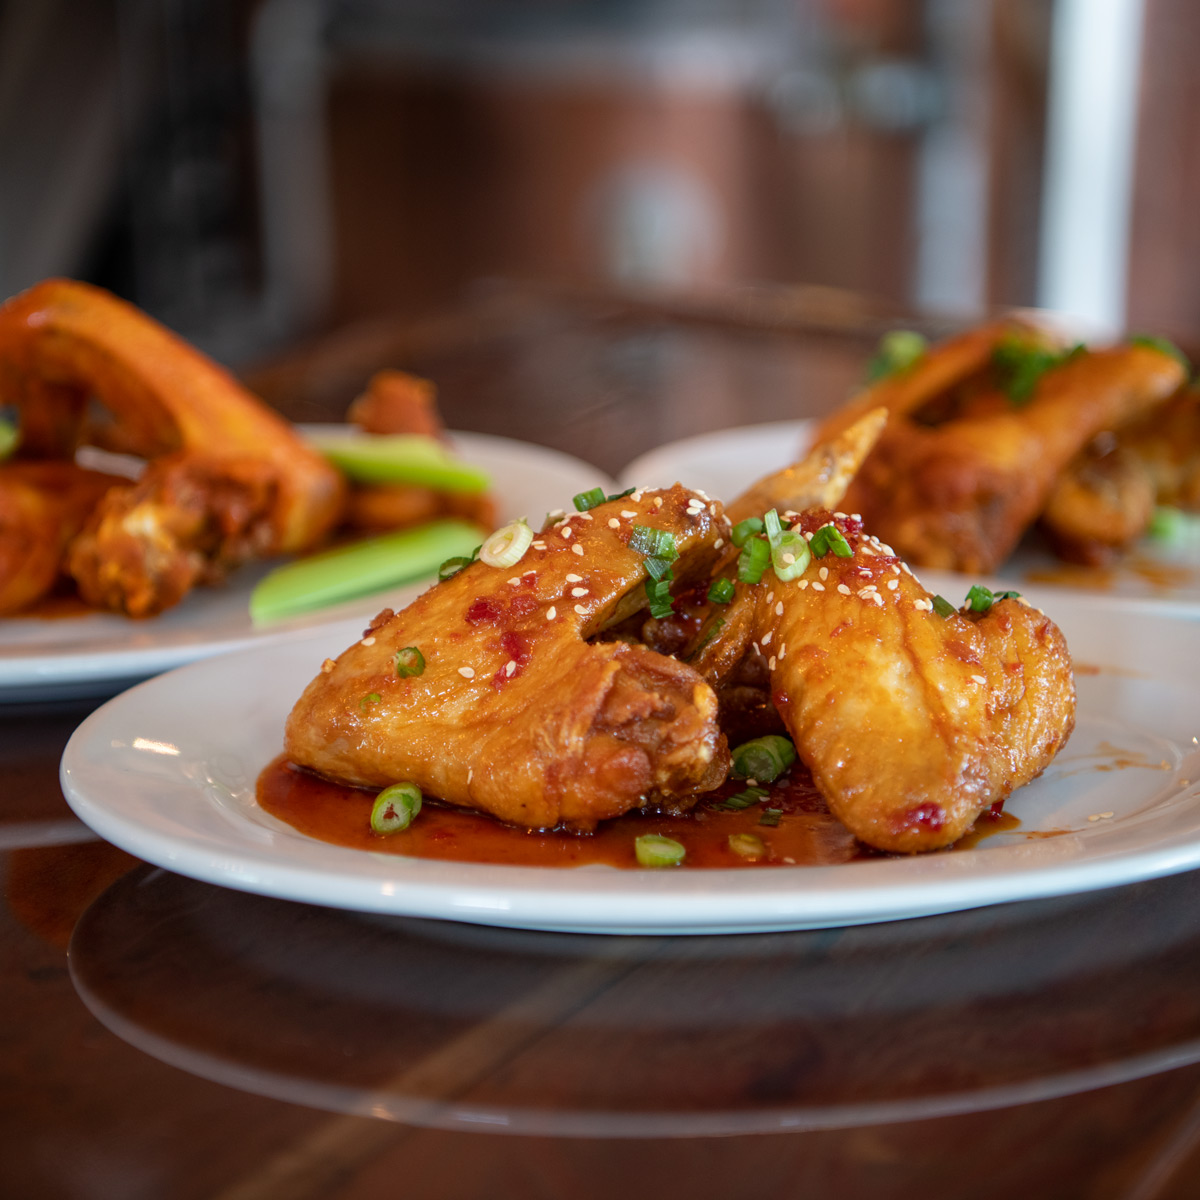 WOLF HOUSE CHICKEN WINGS